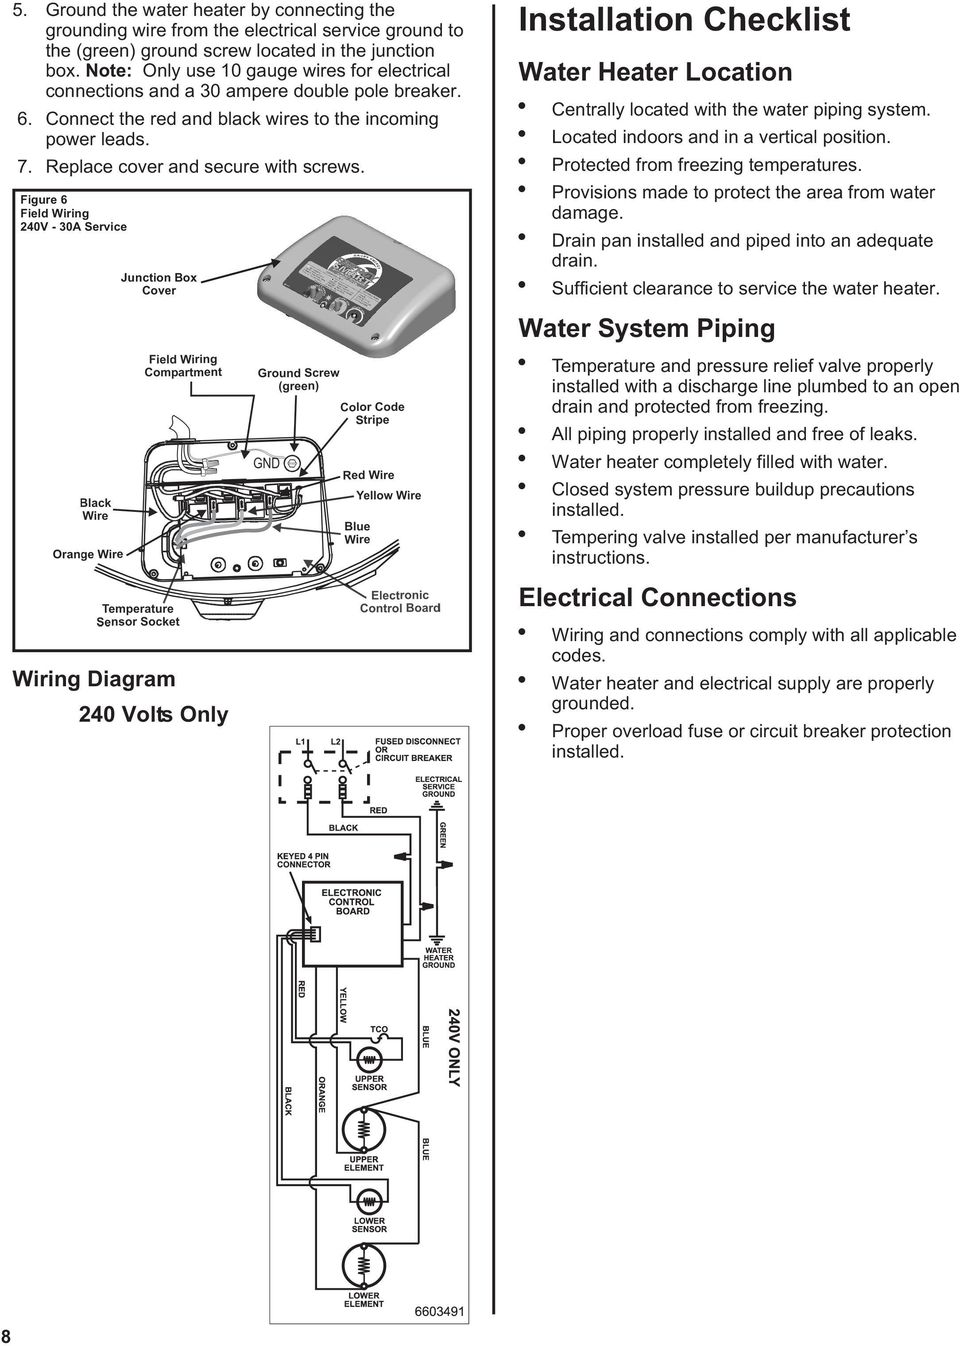 Figure 6 Field Wiring 240V - 30A Service Junction Box Cover Installation Checklist Water Heater Location Centrally located with the water piping system. Located indoors and in a vertical position.